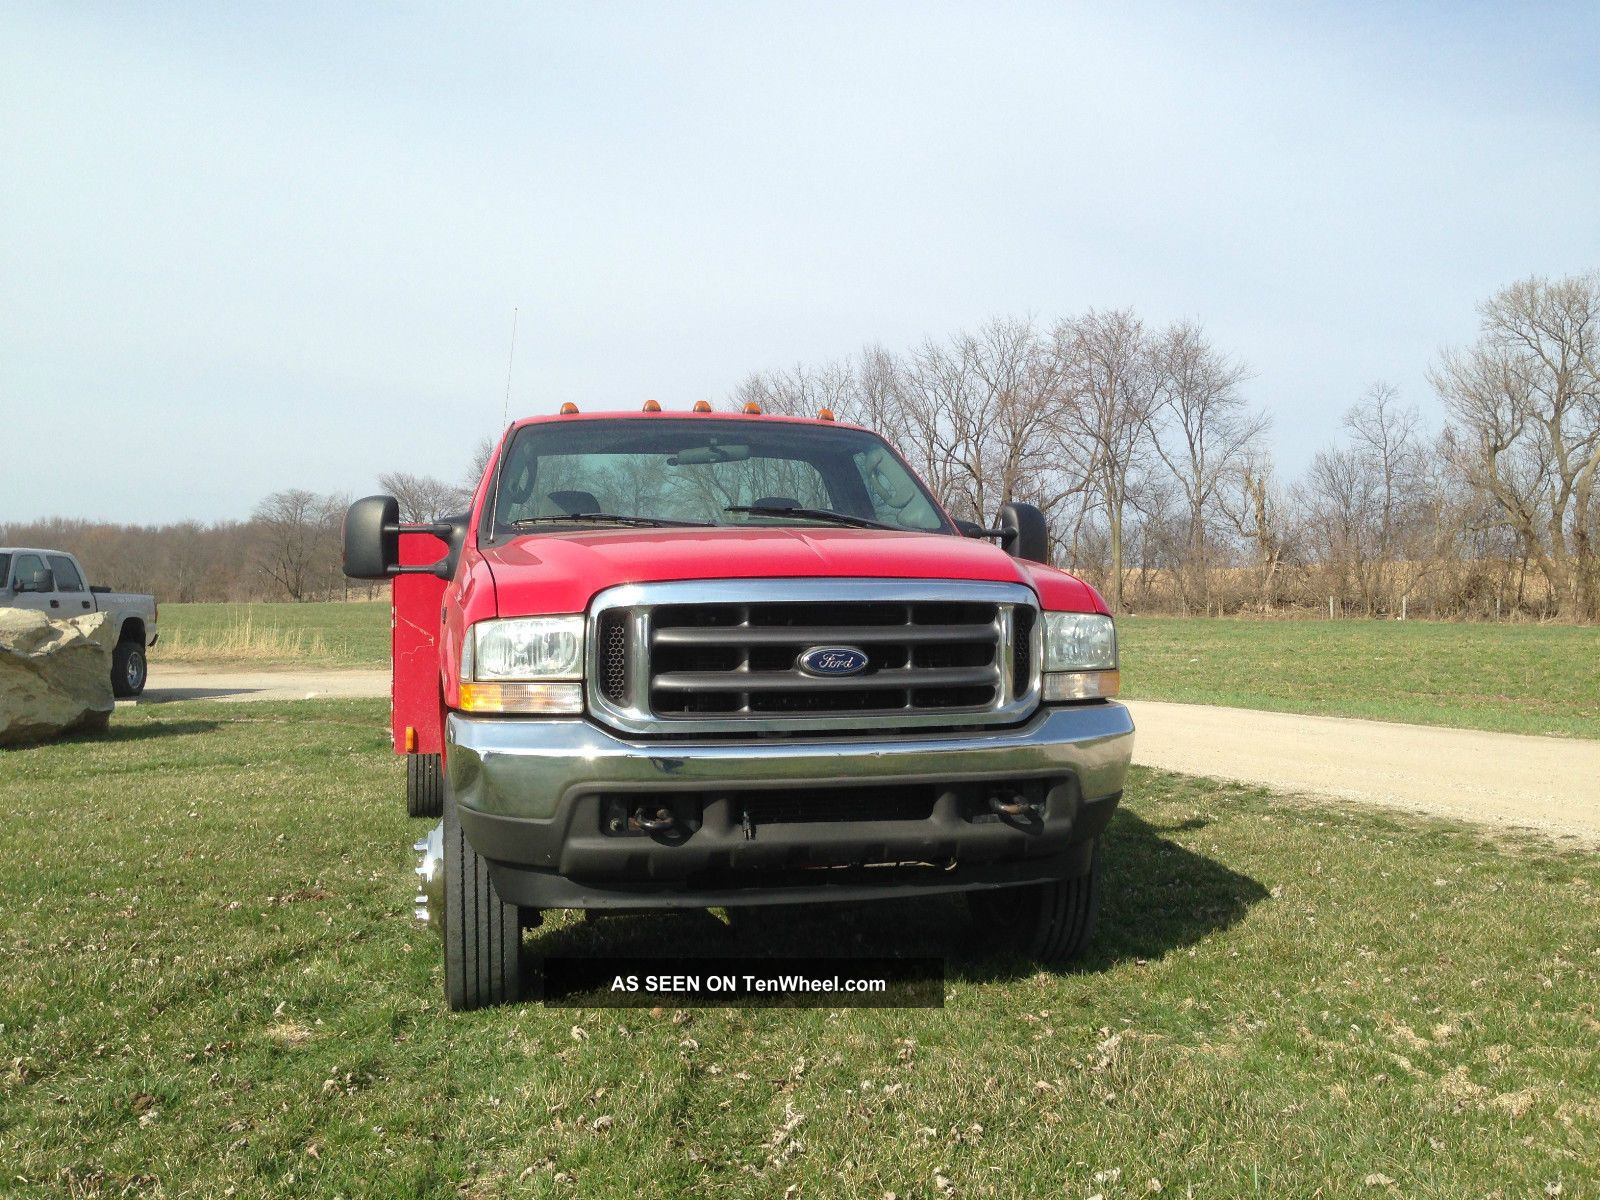 2004 Ford F - 450 Superduty 4x4 Turbo Diesel Service Truck Contractors